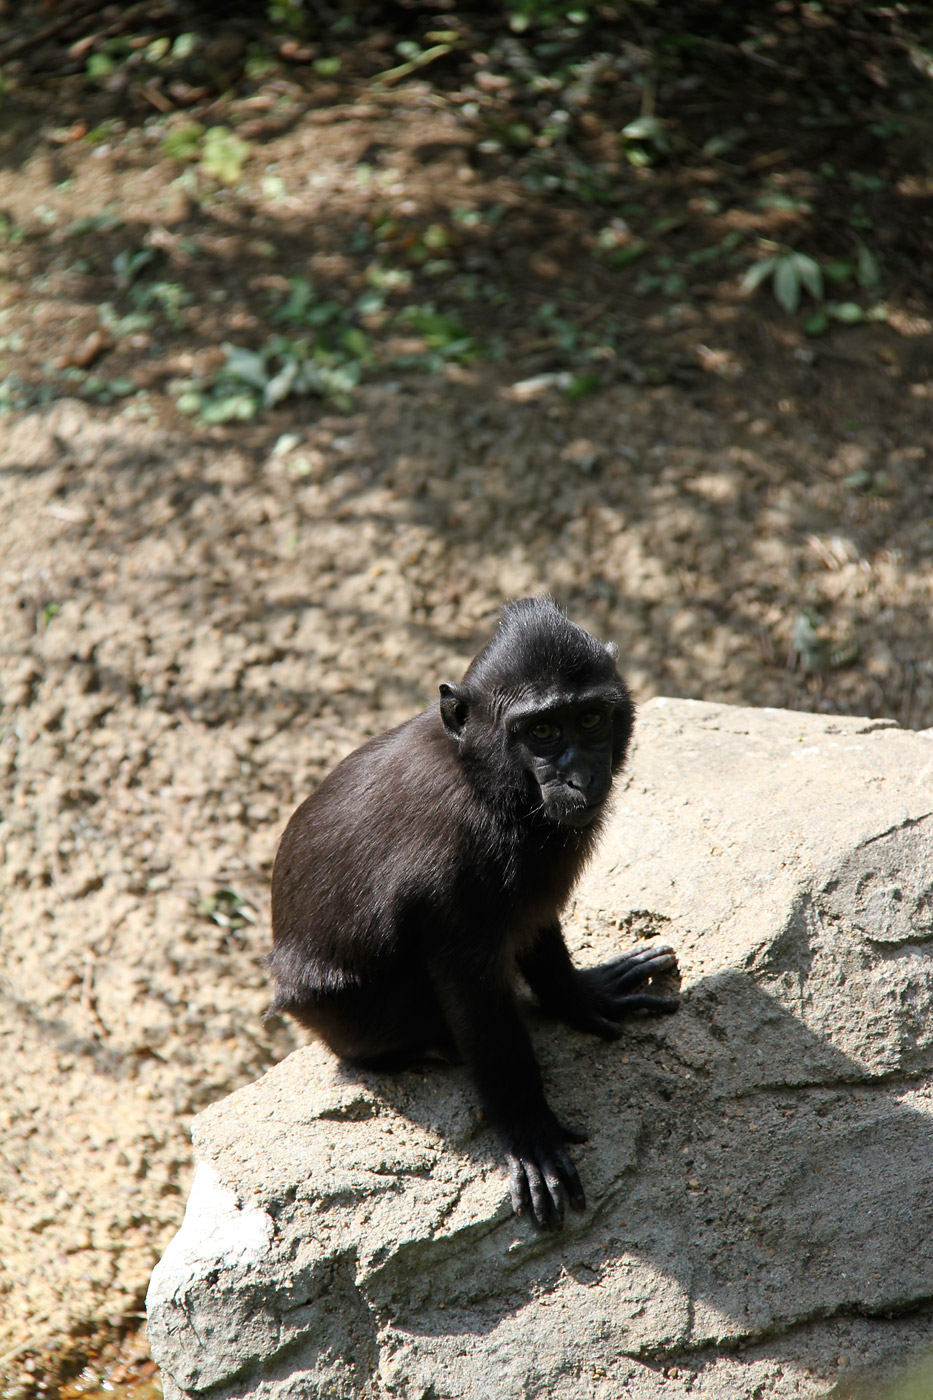 Zimm, a 3-year old Sulawesi macaque at the Memphis Zoo